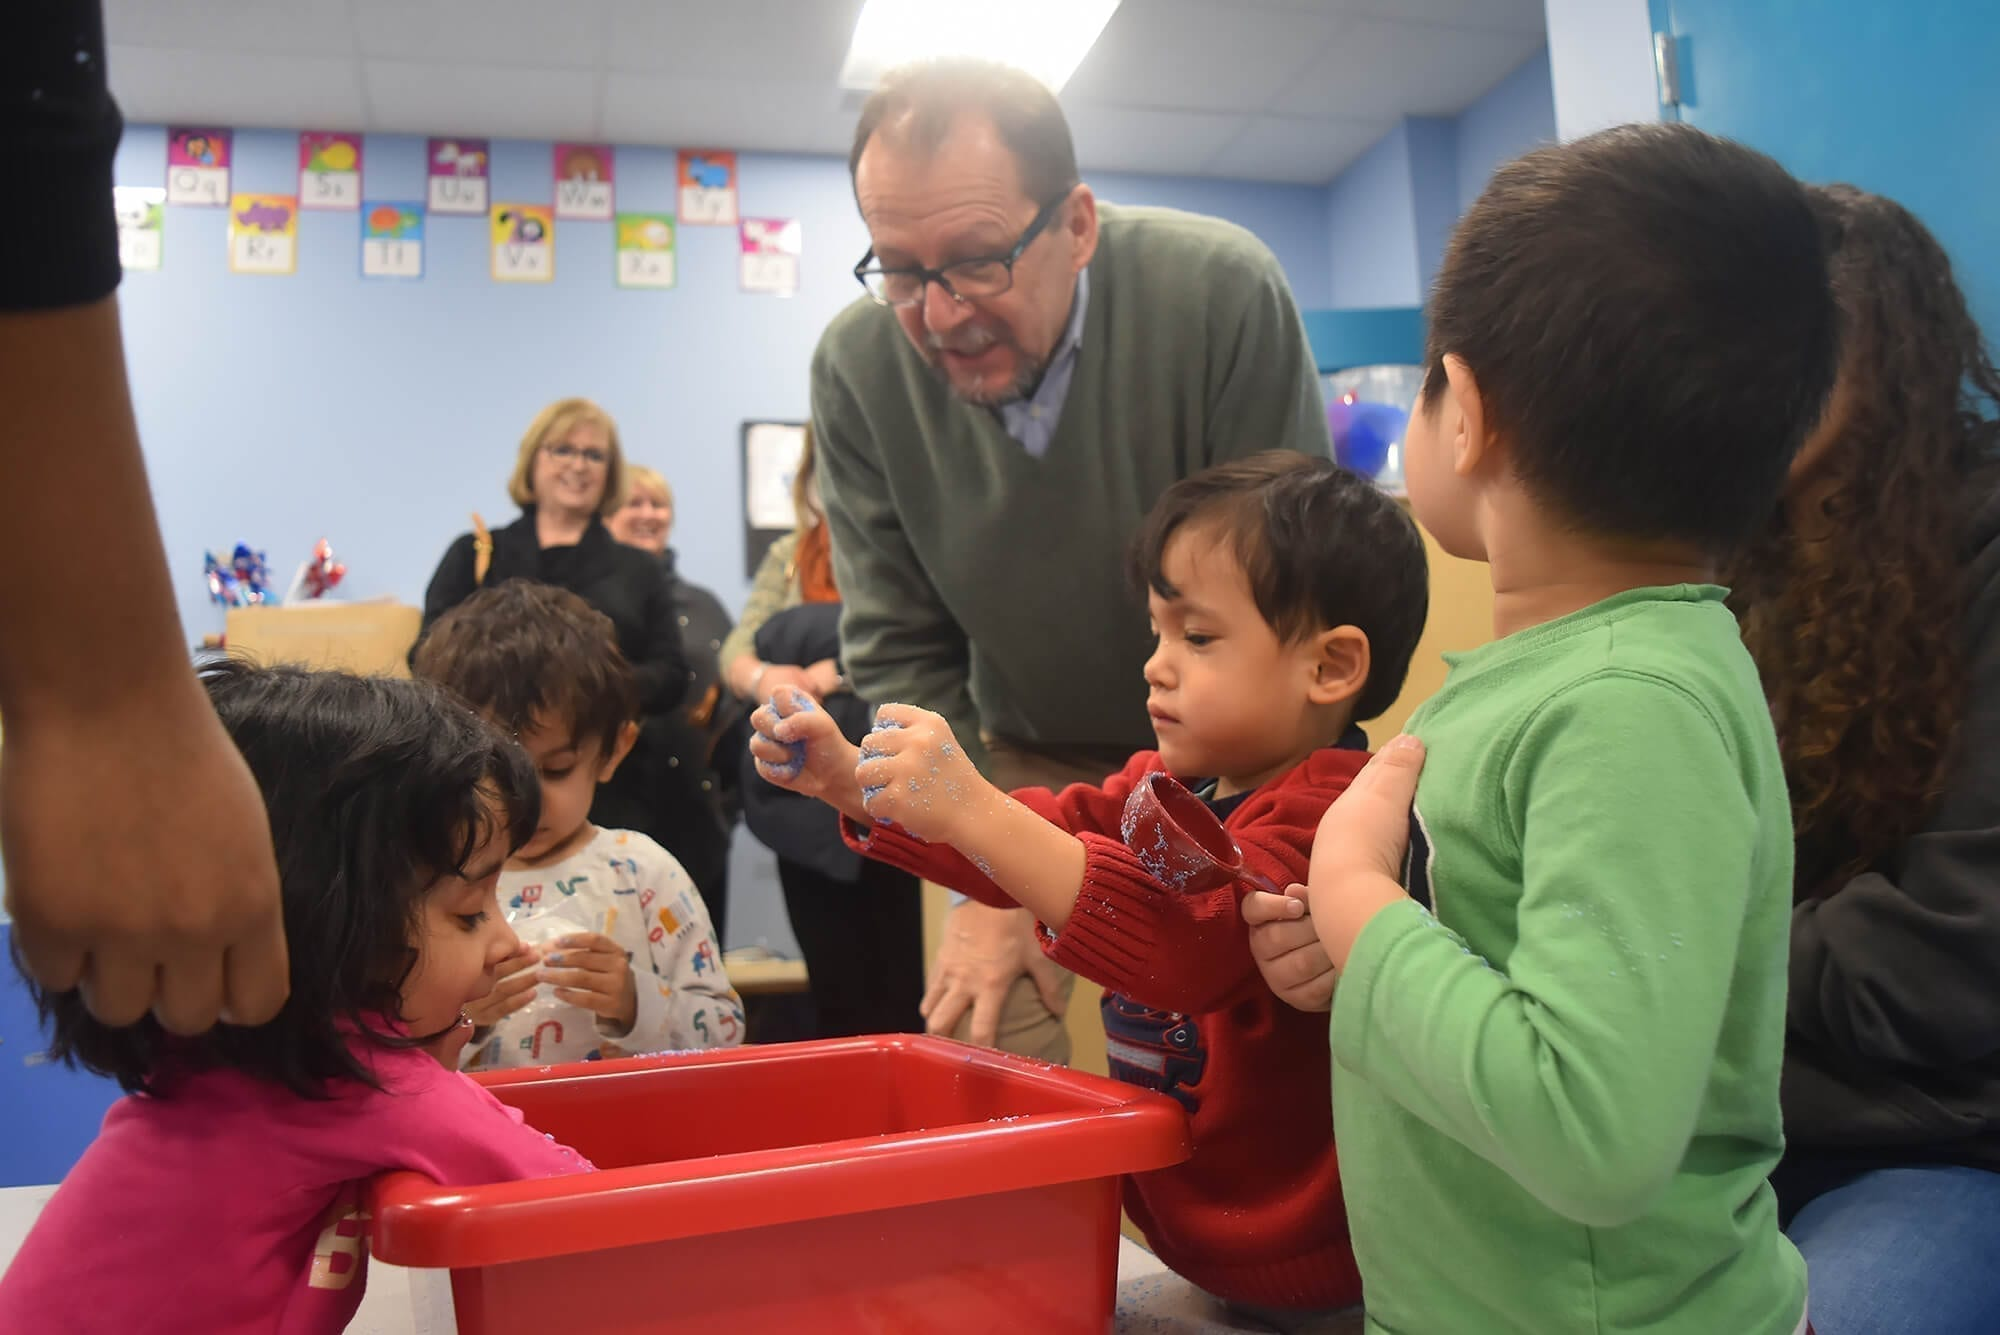 Diana Munson watches as AHRC NYC's CEO, Marco Damiani, engages with the children